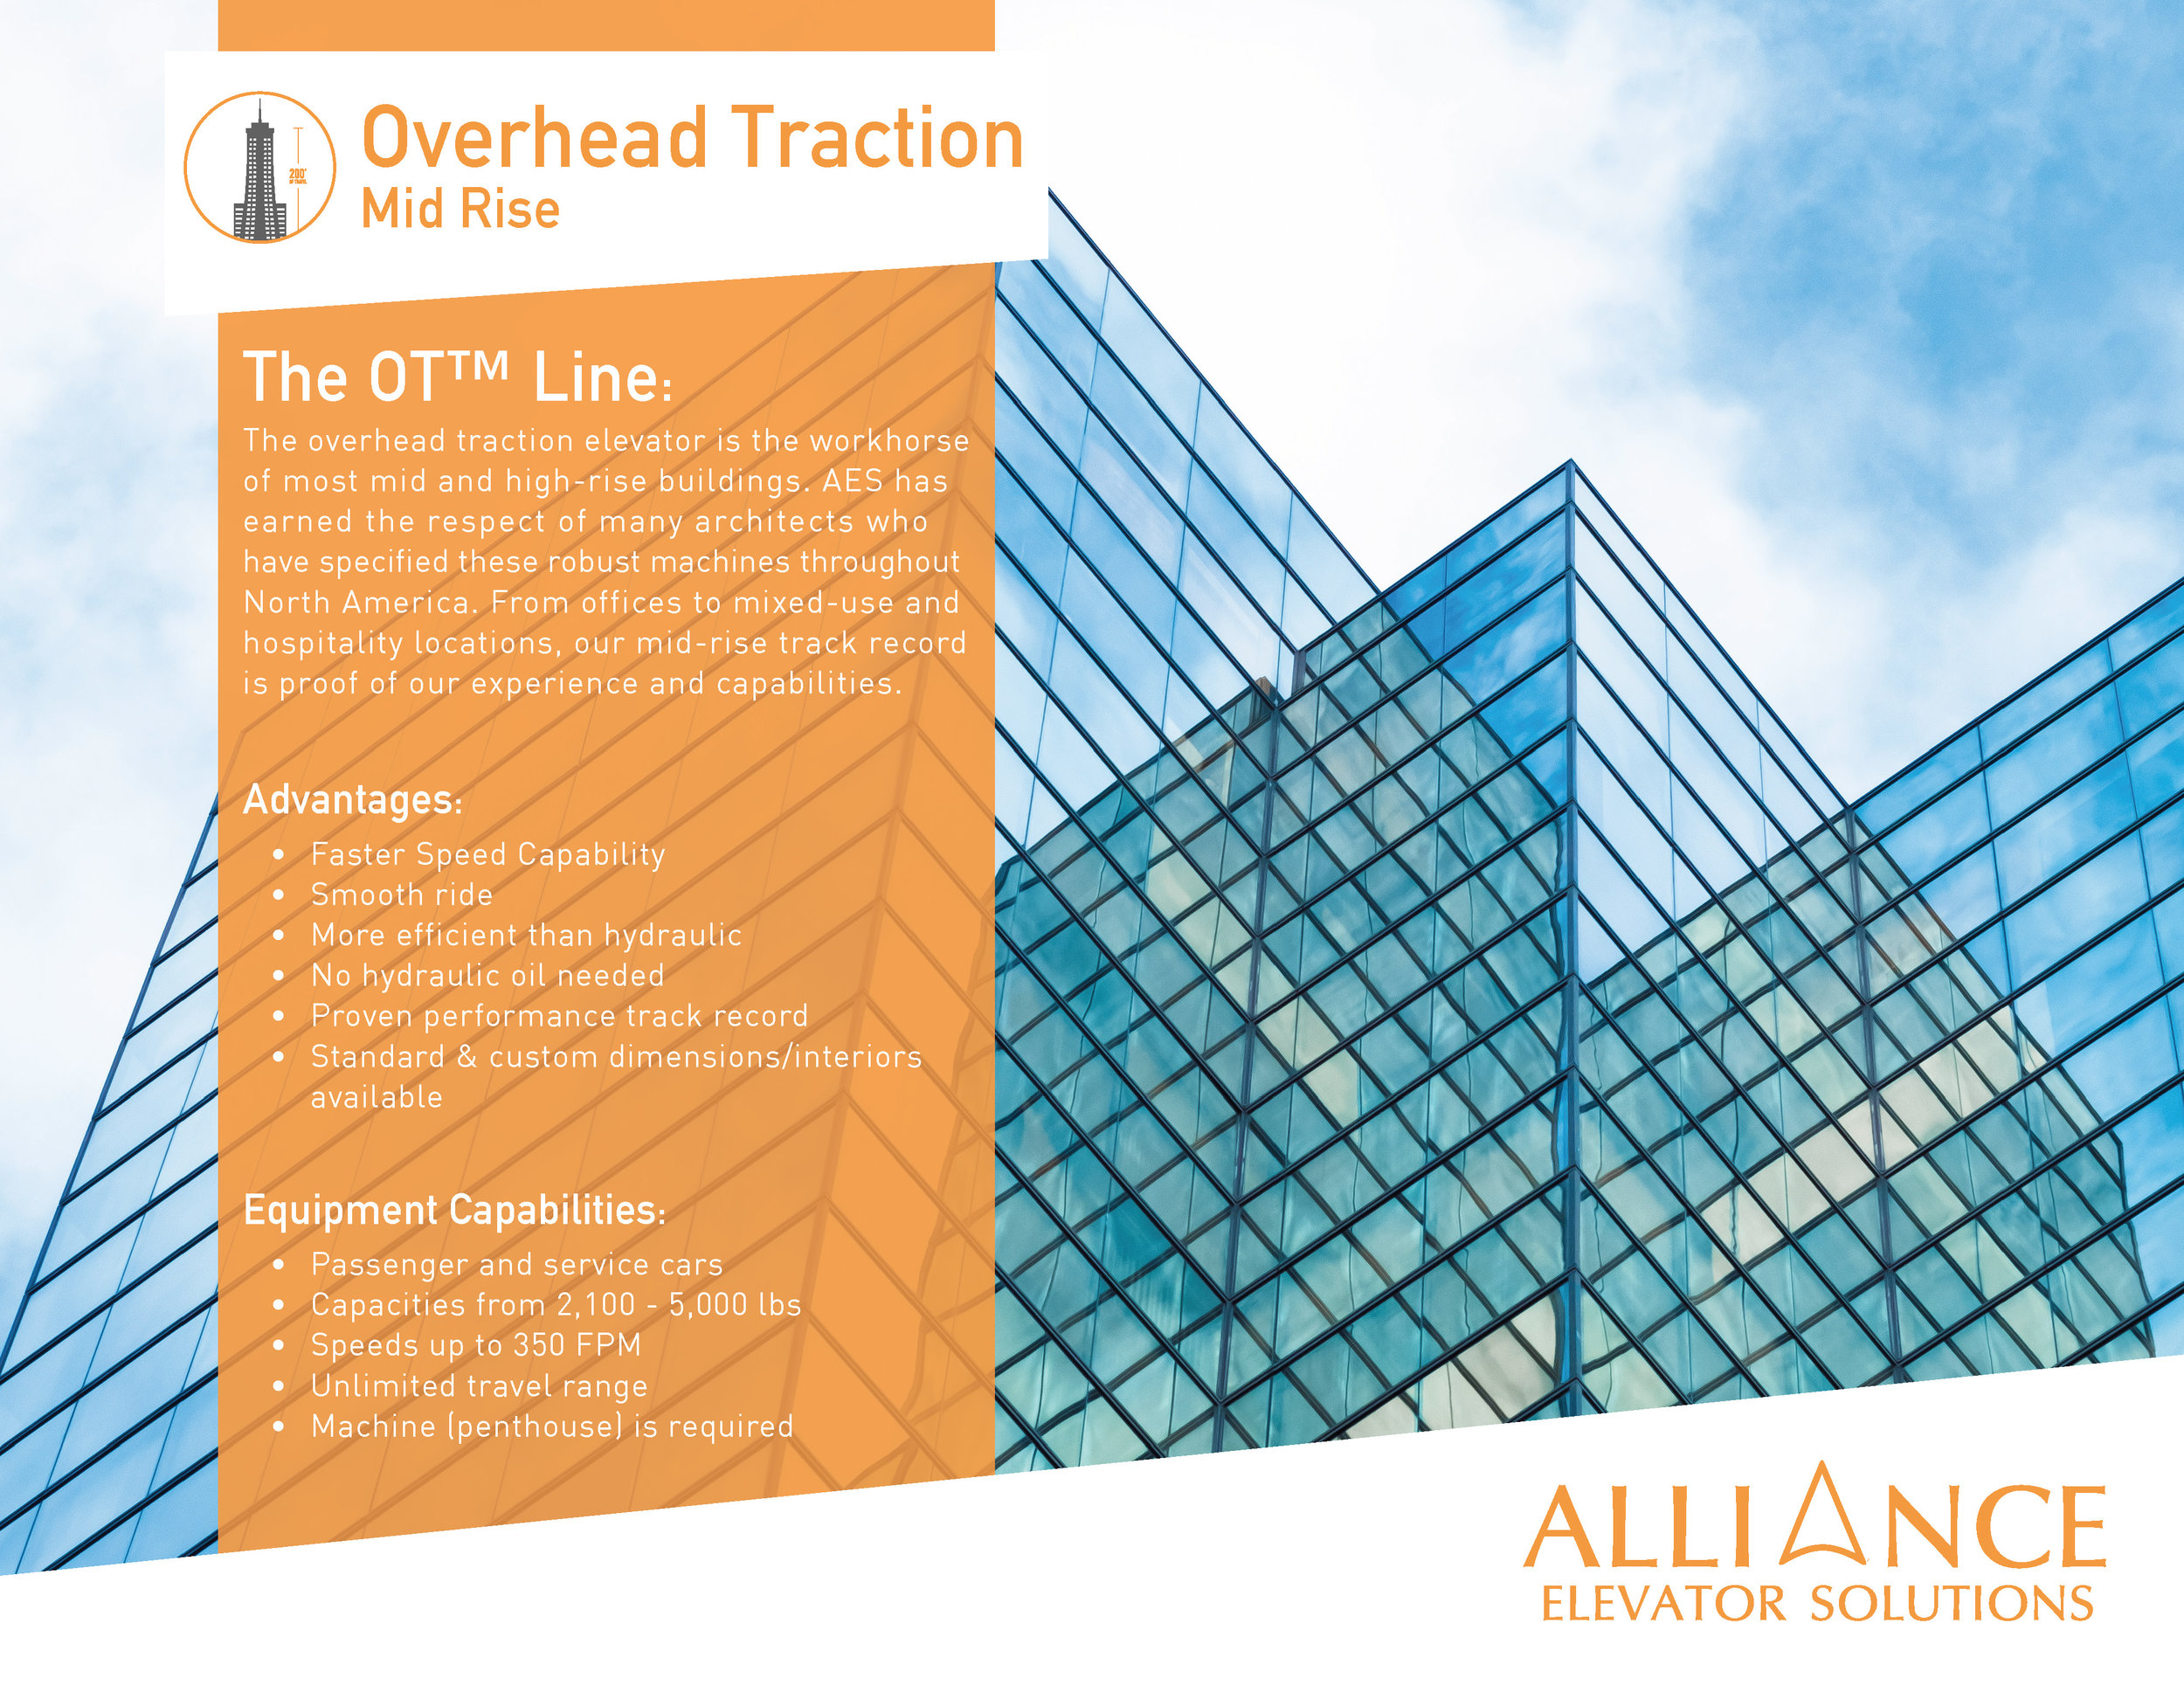 © ProArts Media - Alliance Elevator Solutions - Overhead Traction Cut Sheet_Page_1.jpg